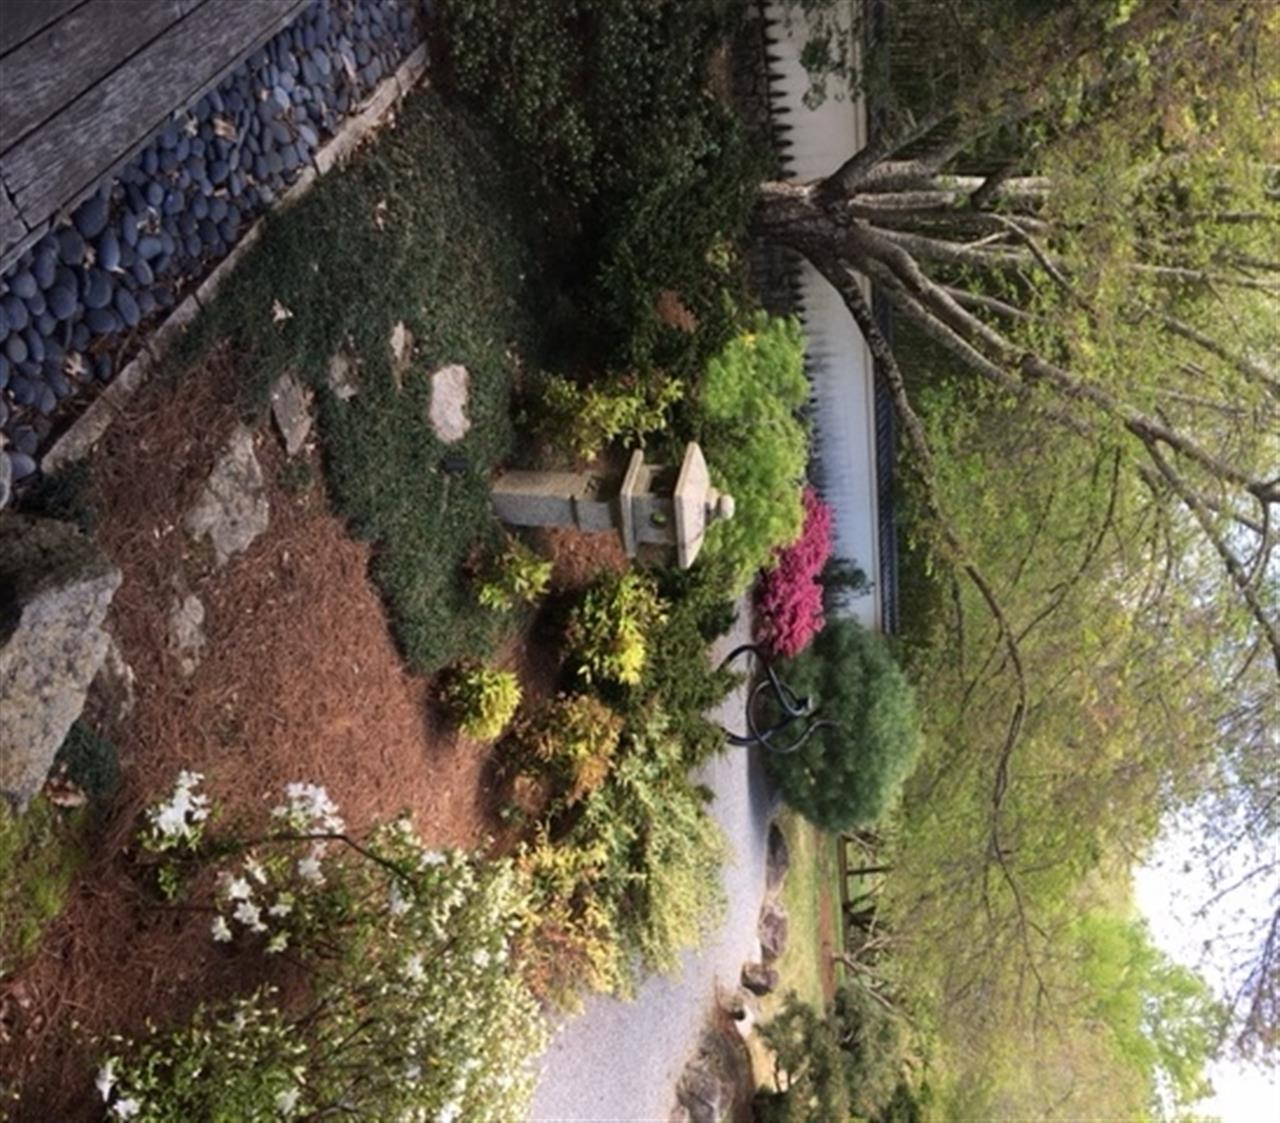 Japanese Garden View at Cheekwood Gardens #leadingRElocal #Cheekwood Botanical Gardens #Nashville, TN